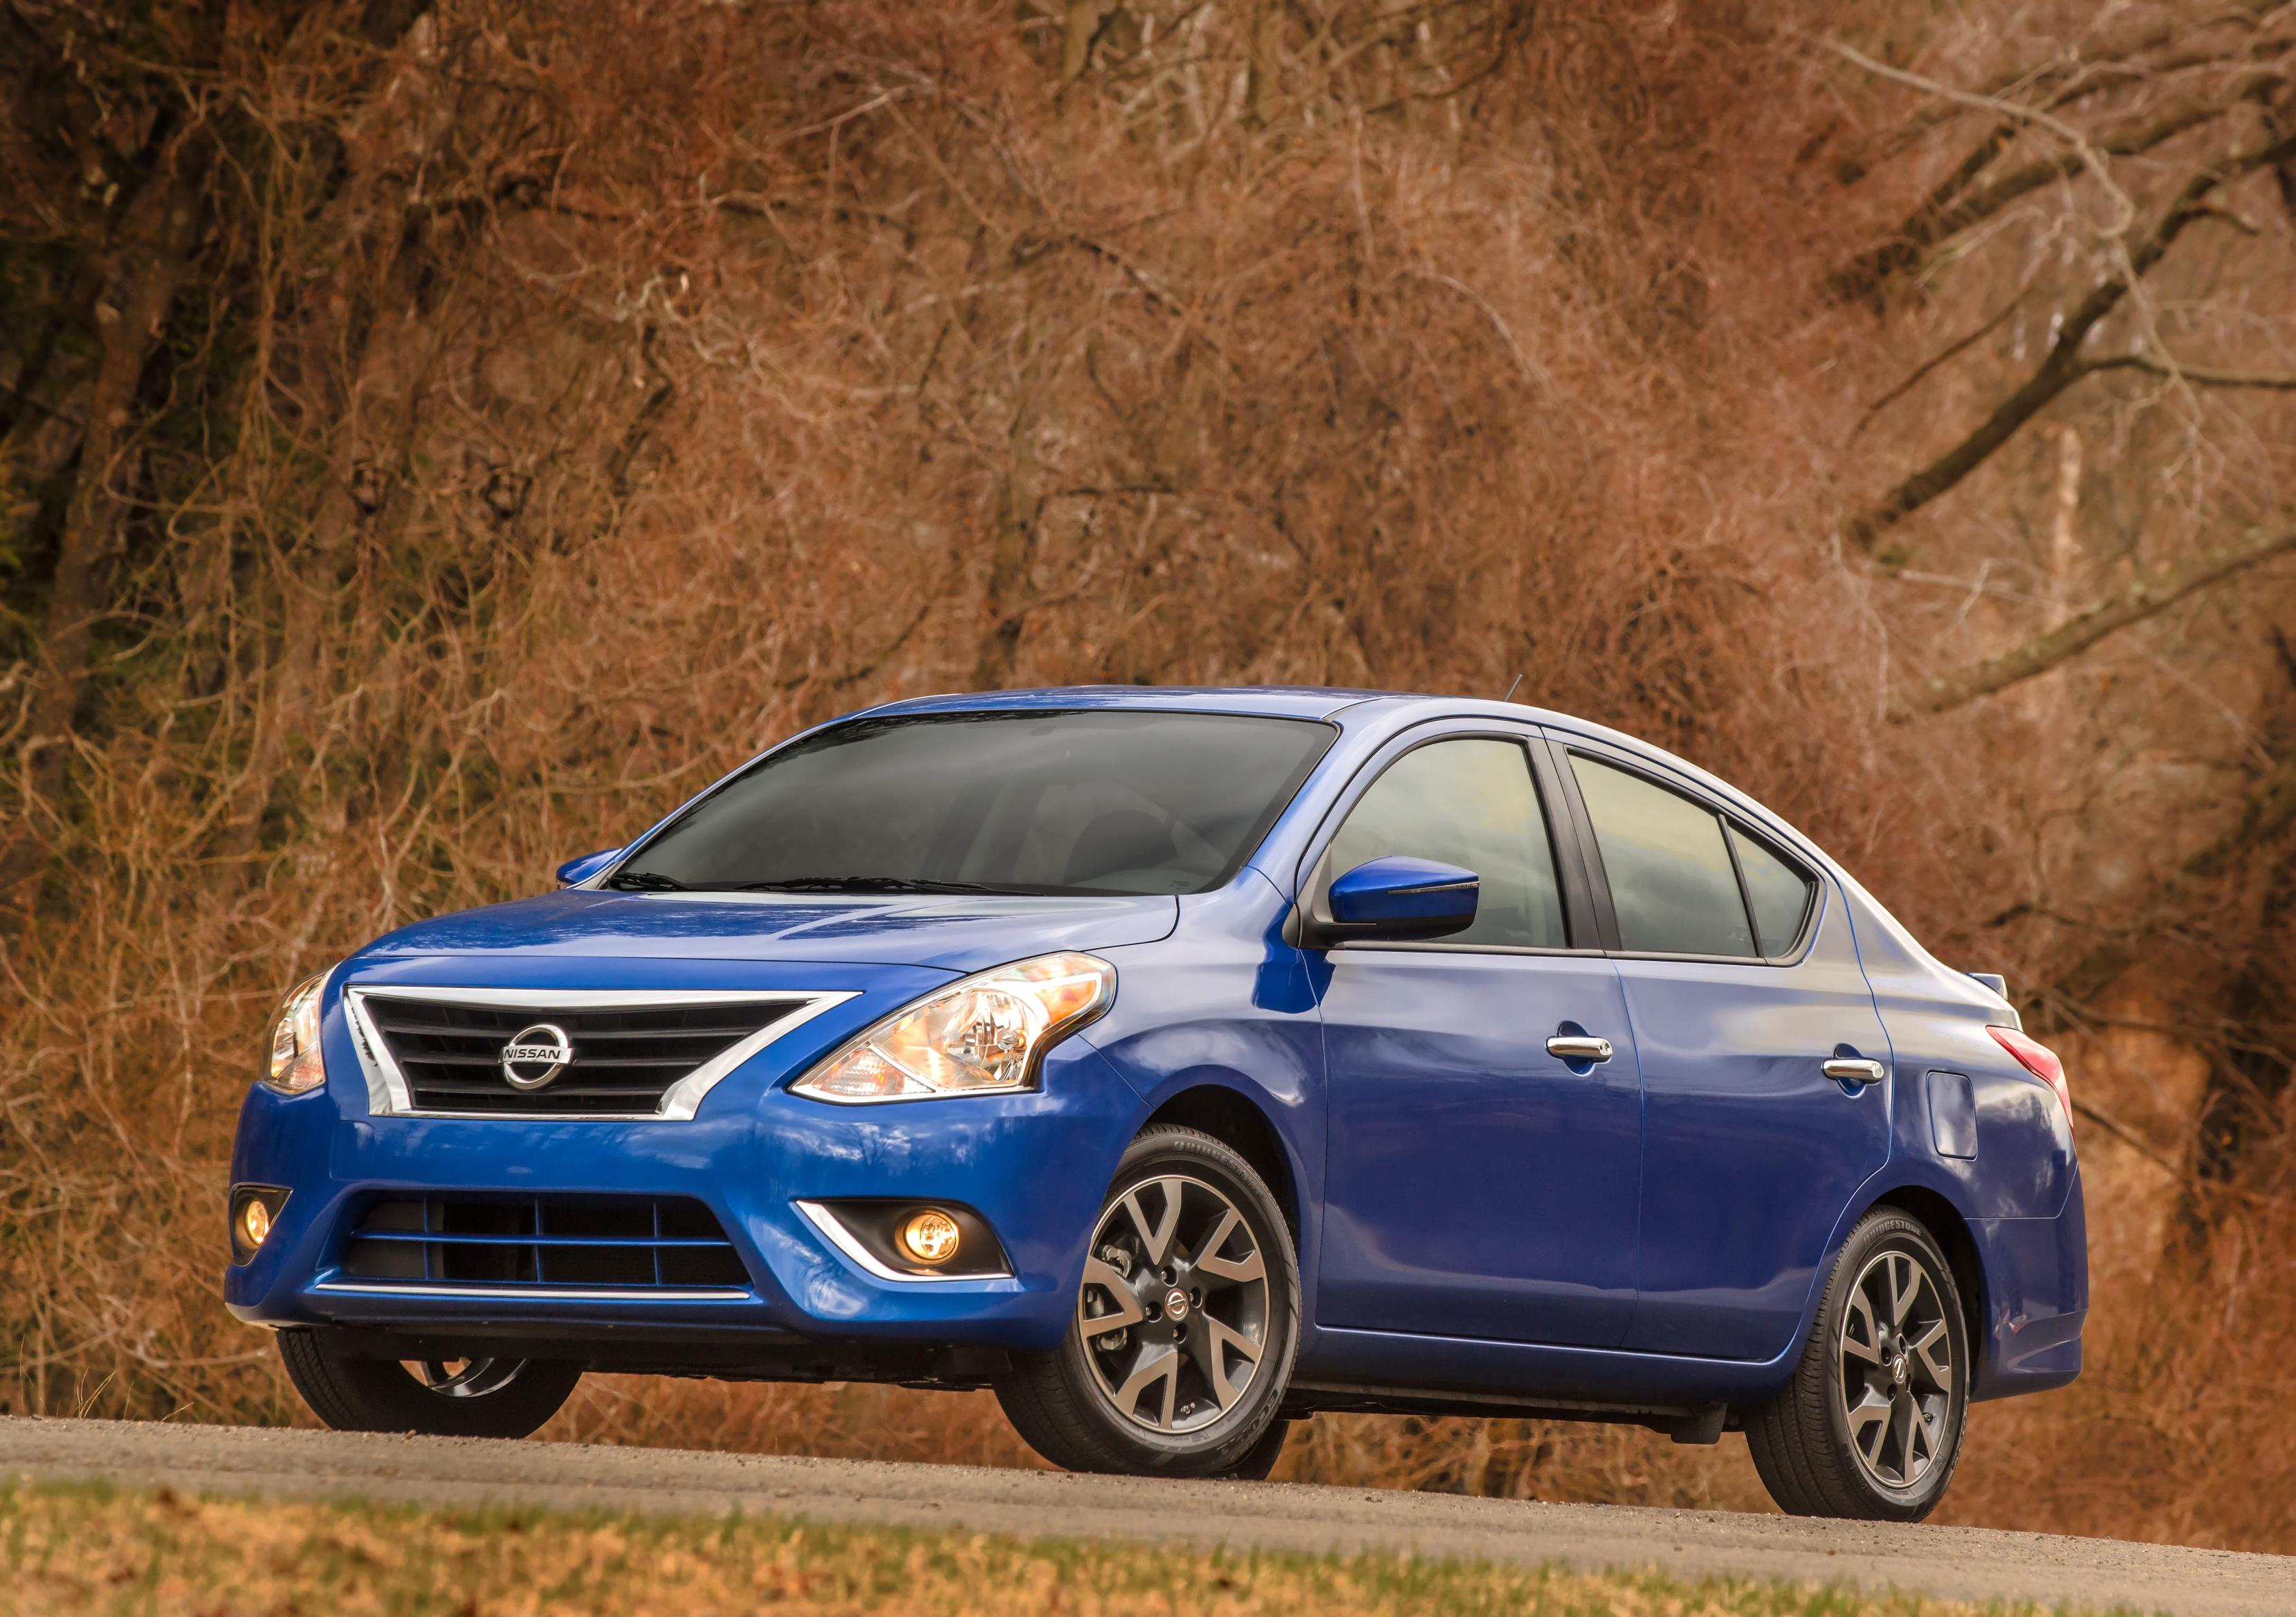 Nissan Versa, one of Nissan's top selling vehicles in calendar year 2017